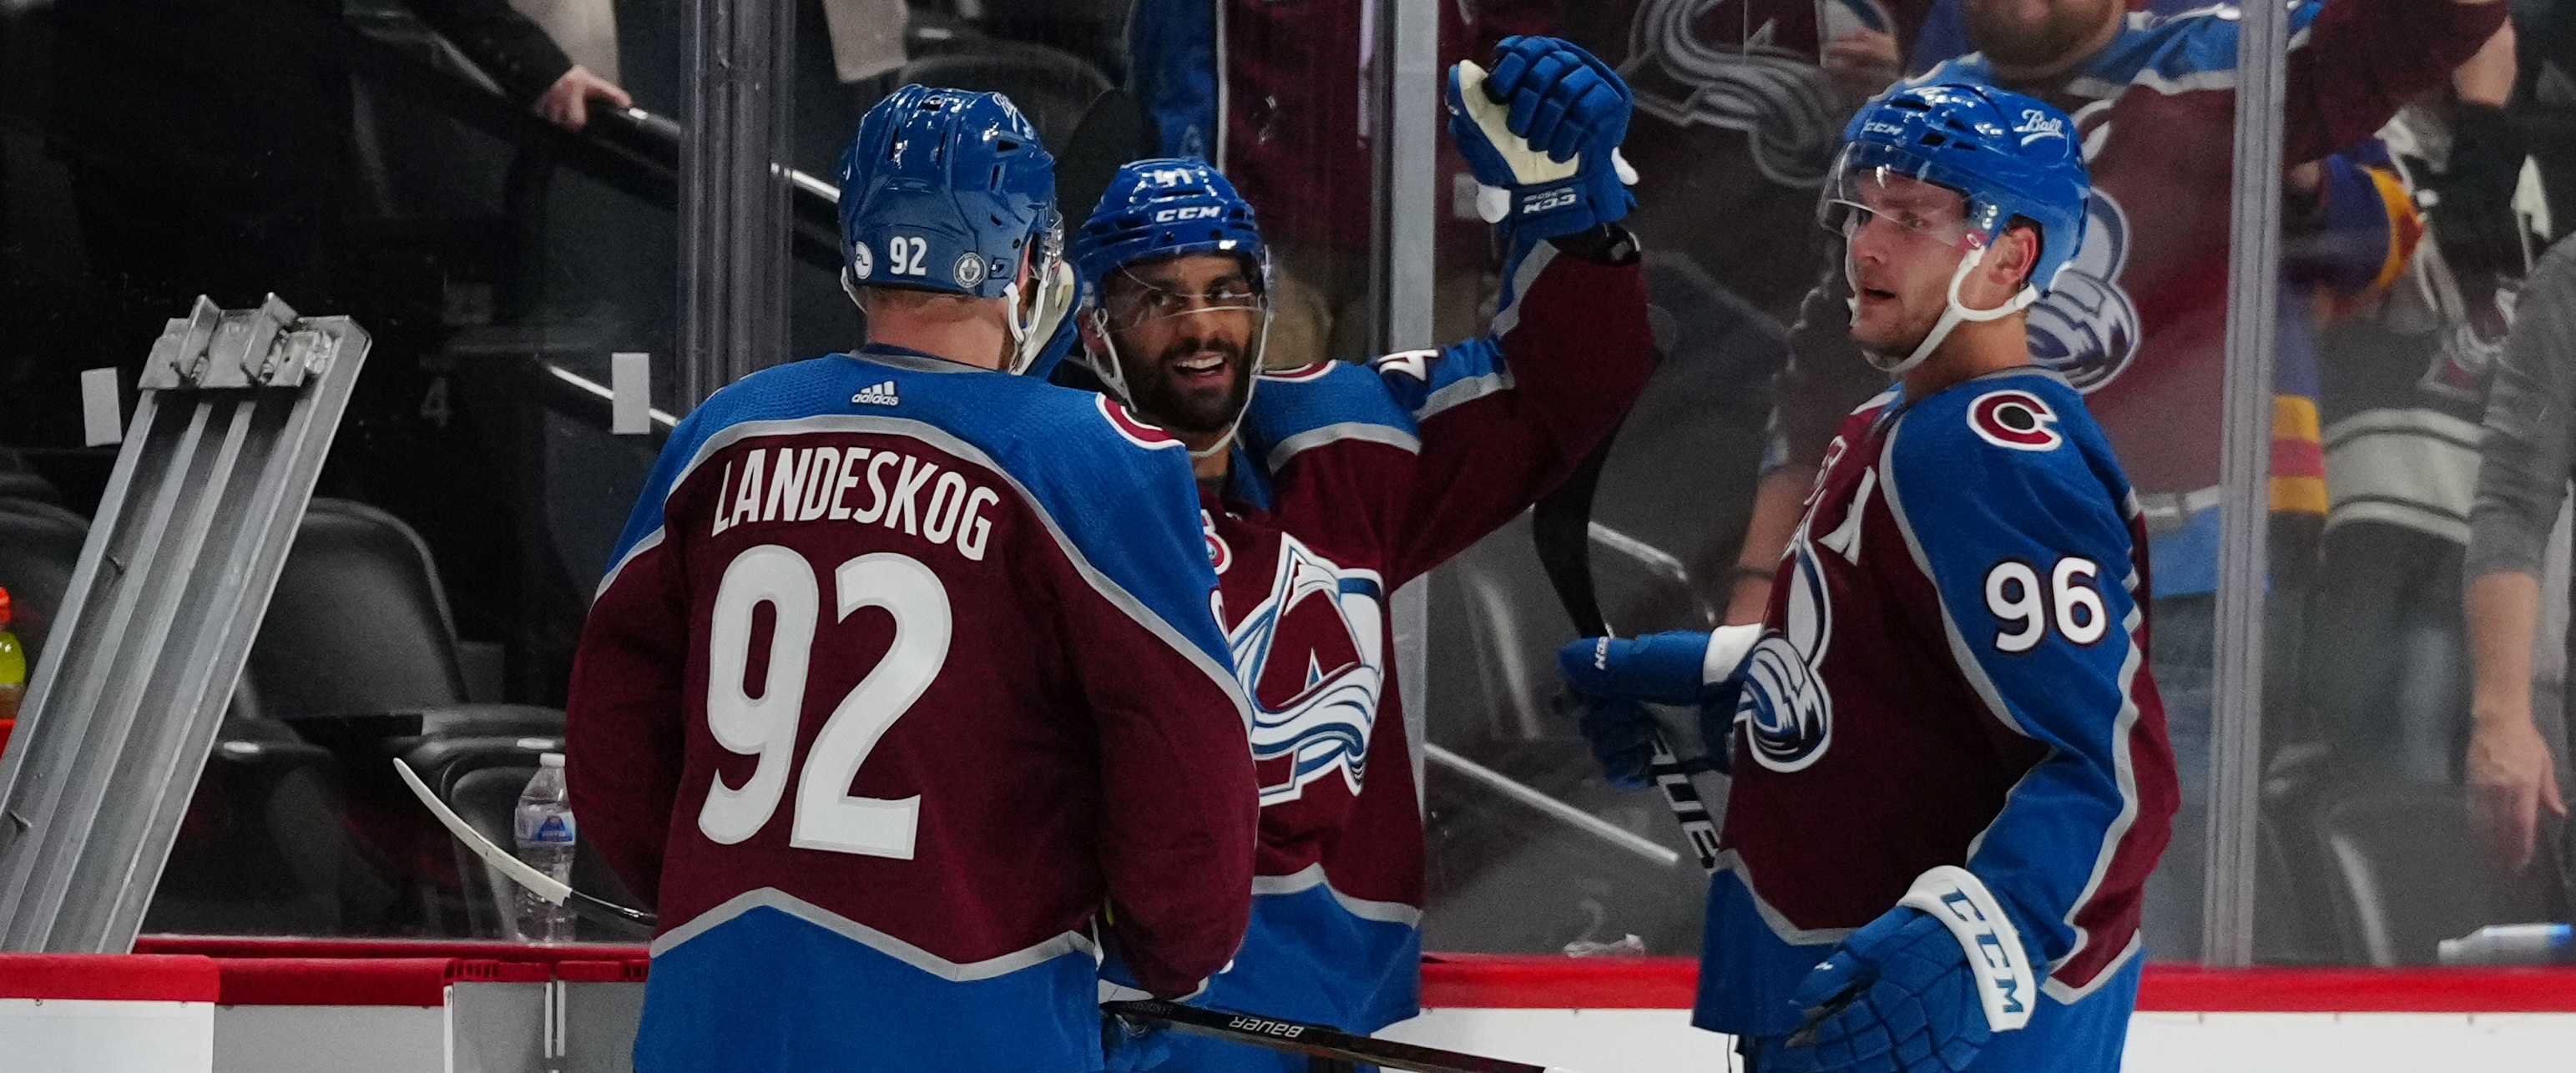 Doubling down: The Avalanche will win the Stanley Cup